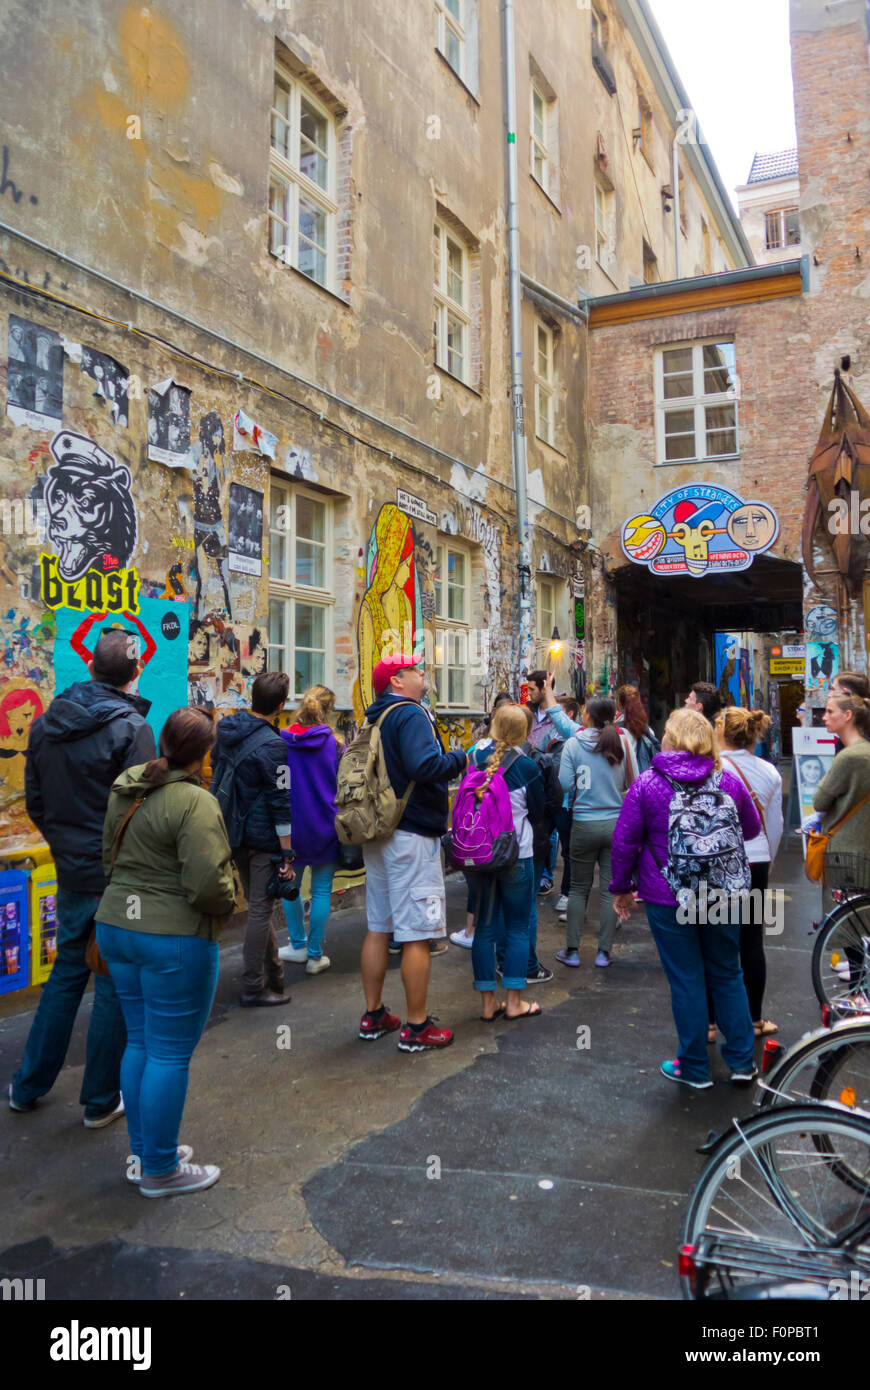 Guided tour group, courtyard of Haus Schwarzenberg, Mitte, Berlin, Germany - Stock Image